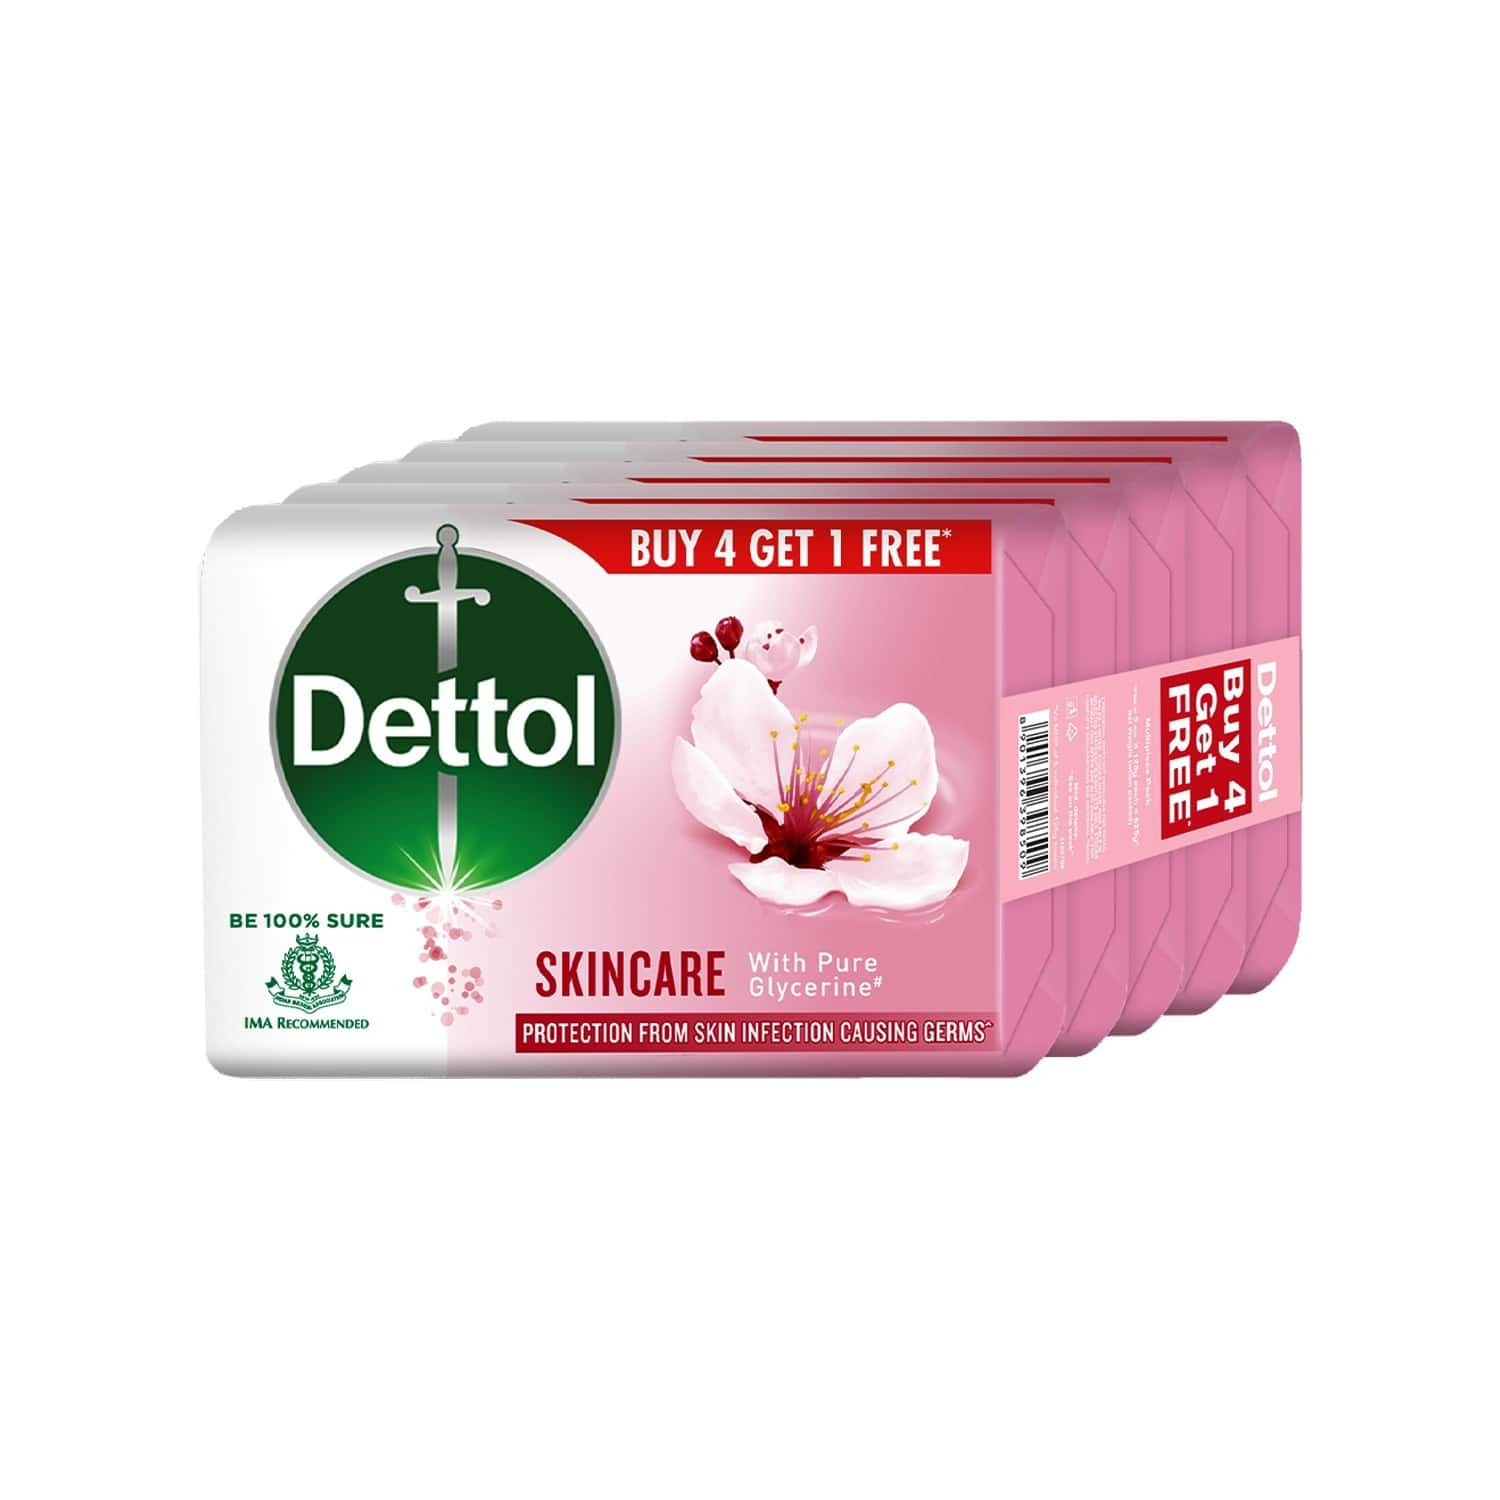 Dettol Skincare Bathing Soap Bar 125gm Each, Buy 4 Get 1 Free